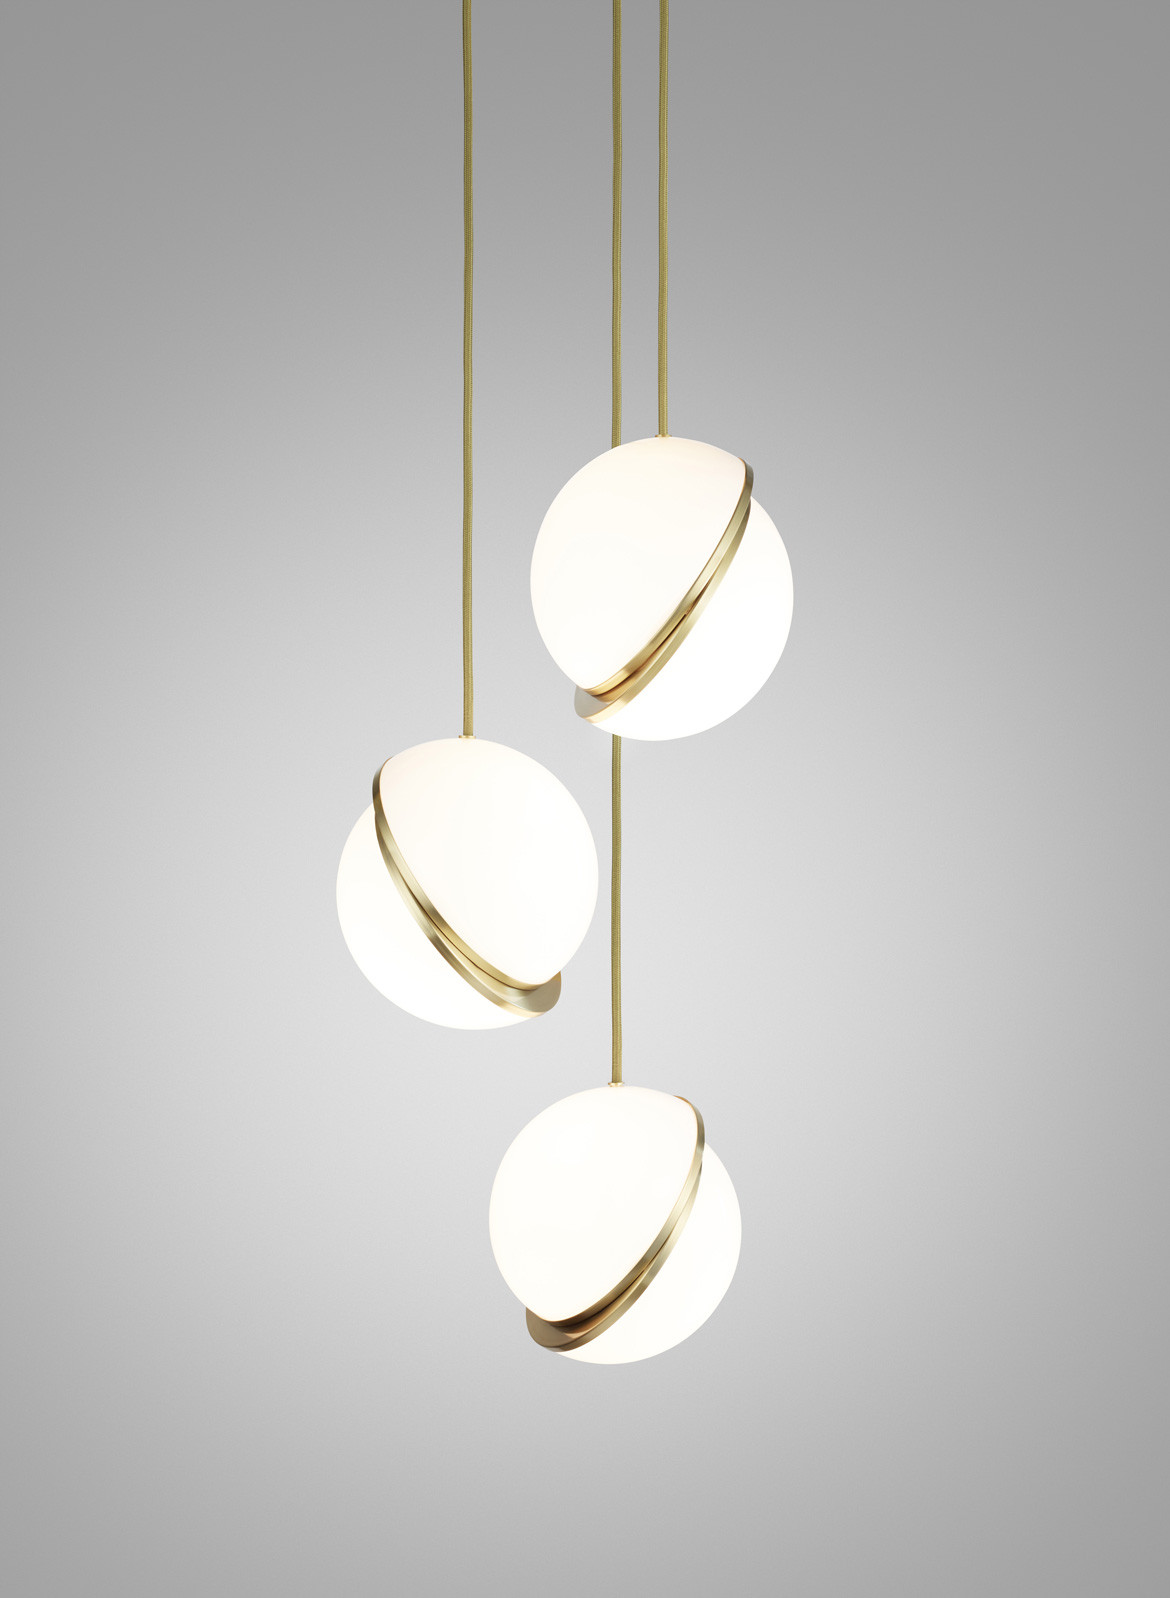 Space Furniture Lee Broom Mini crescent chandelier